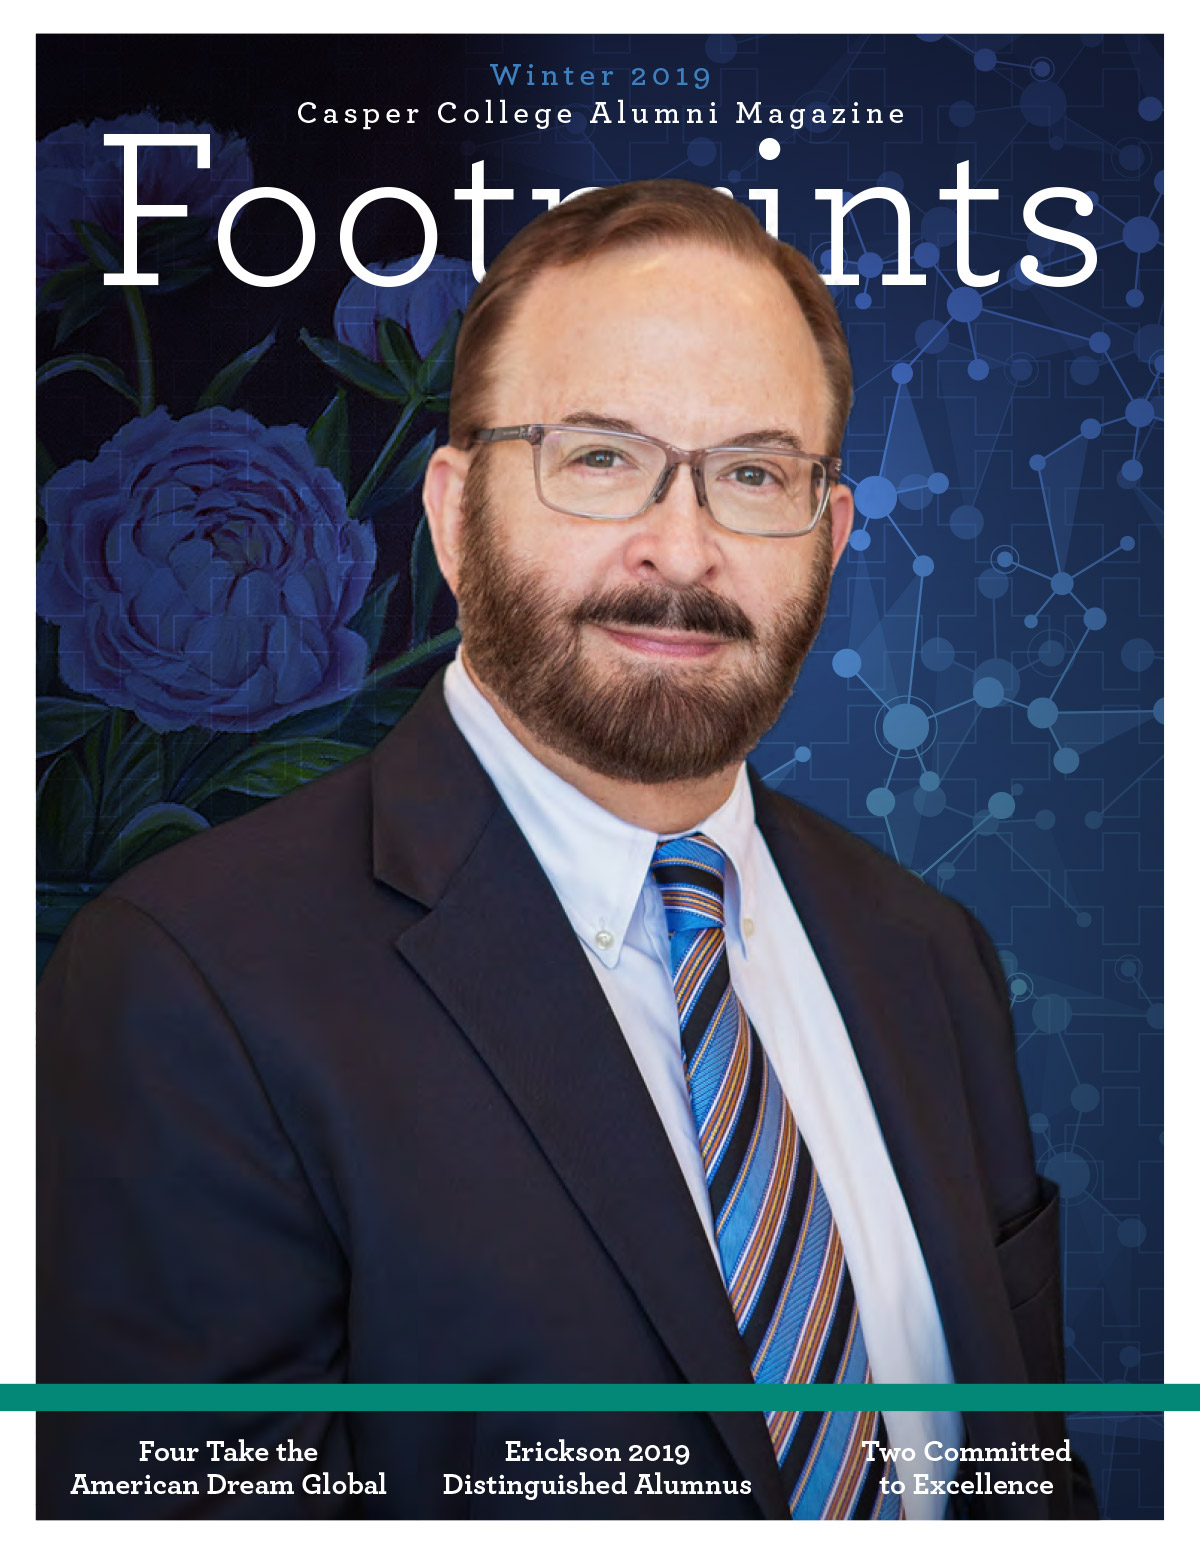 Footprints Magazine Winter 2019 Cover Image